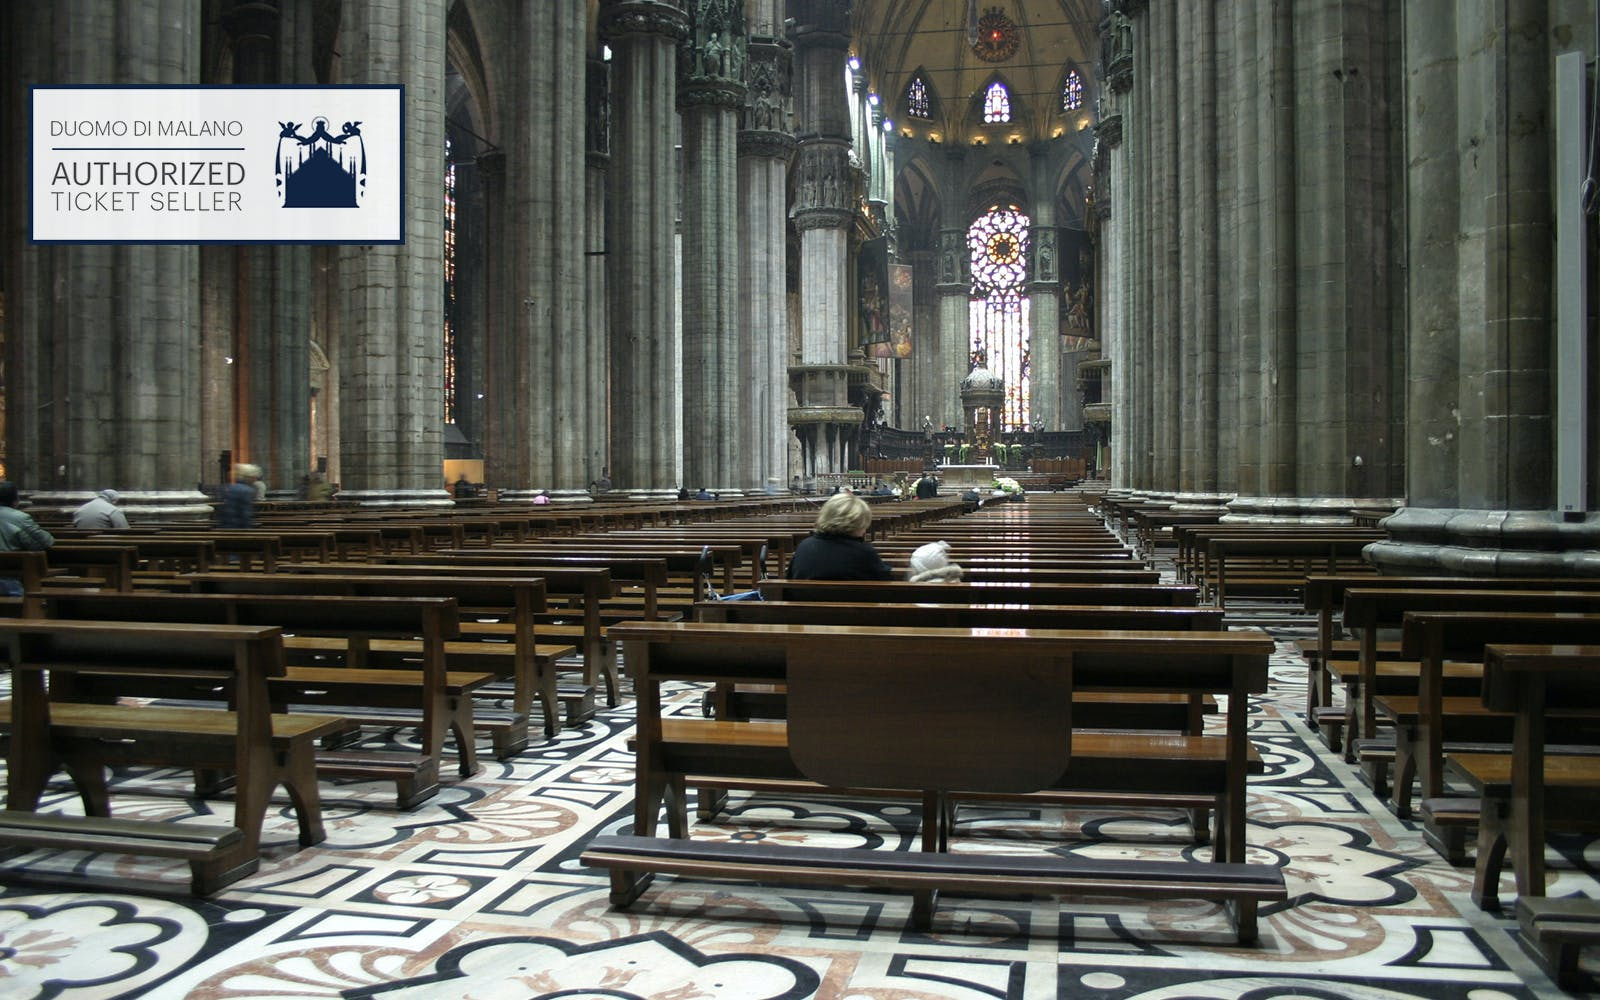 skip the line duomo di milano, rooftop & museum tickets-2